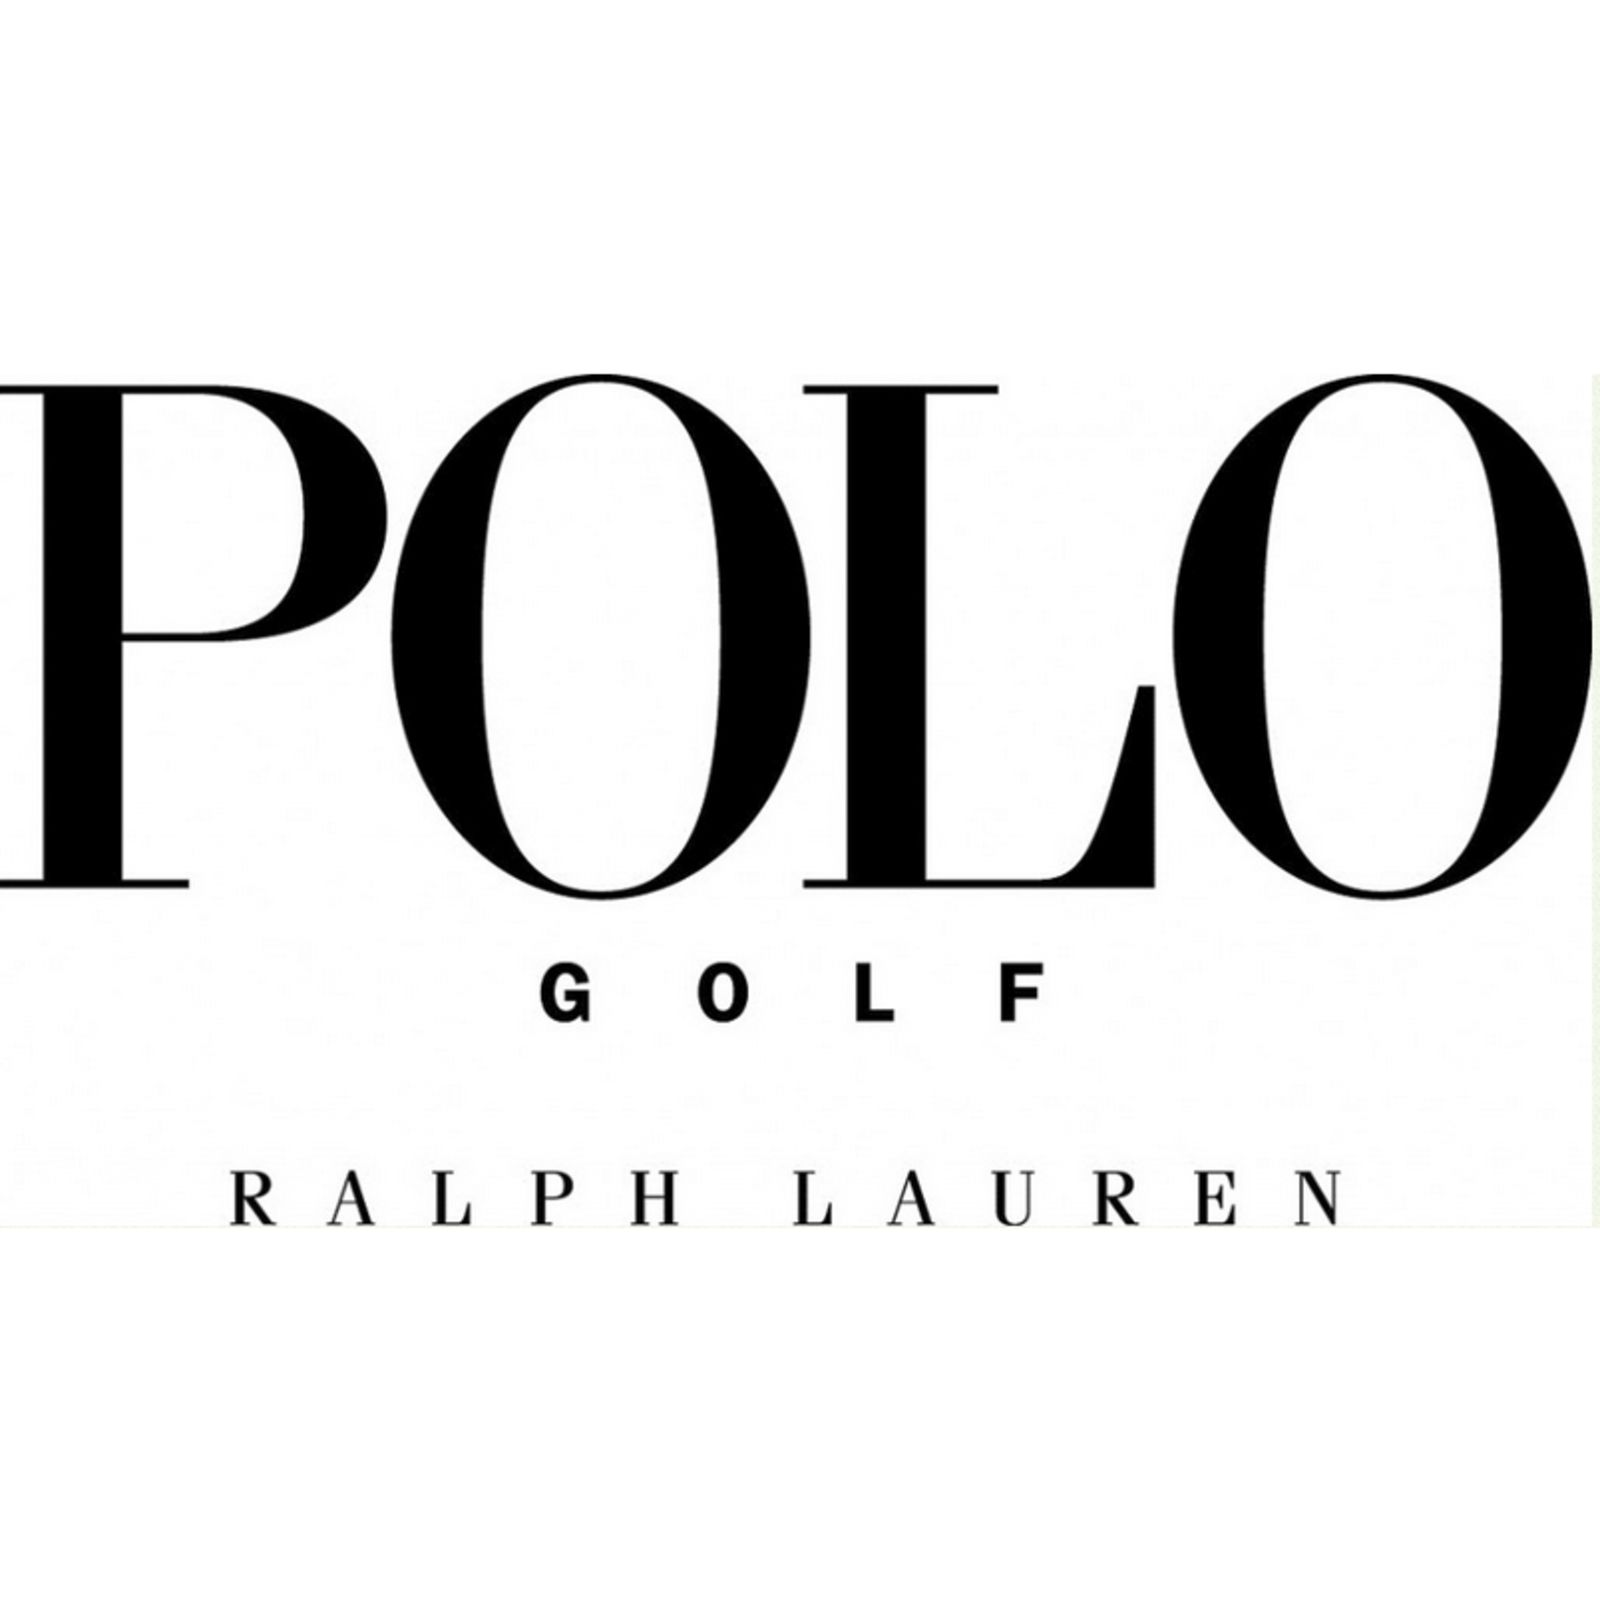 POLO RALPH LAUREN GOLF (Image 1)